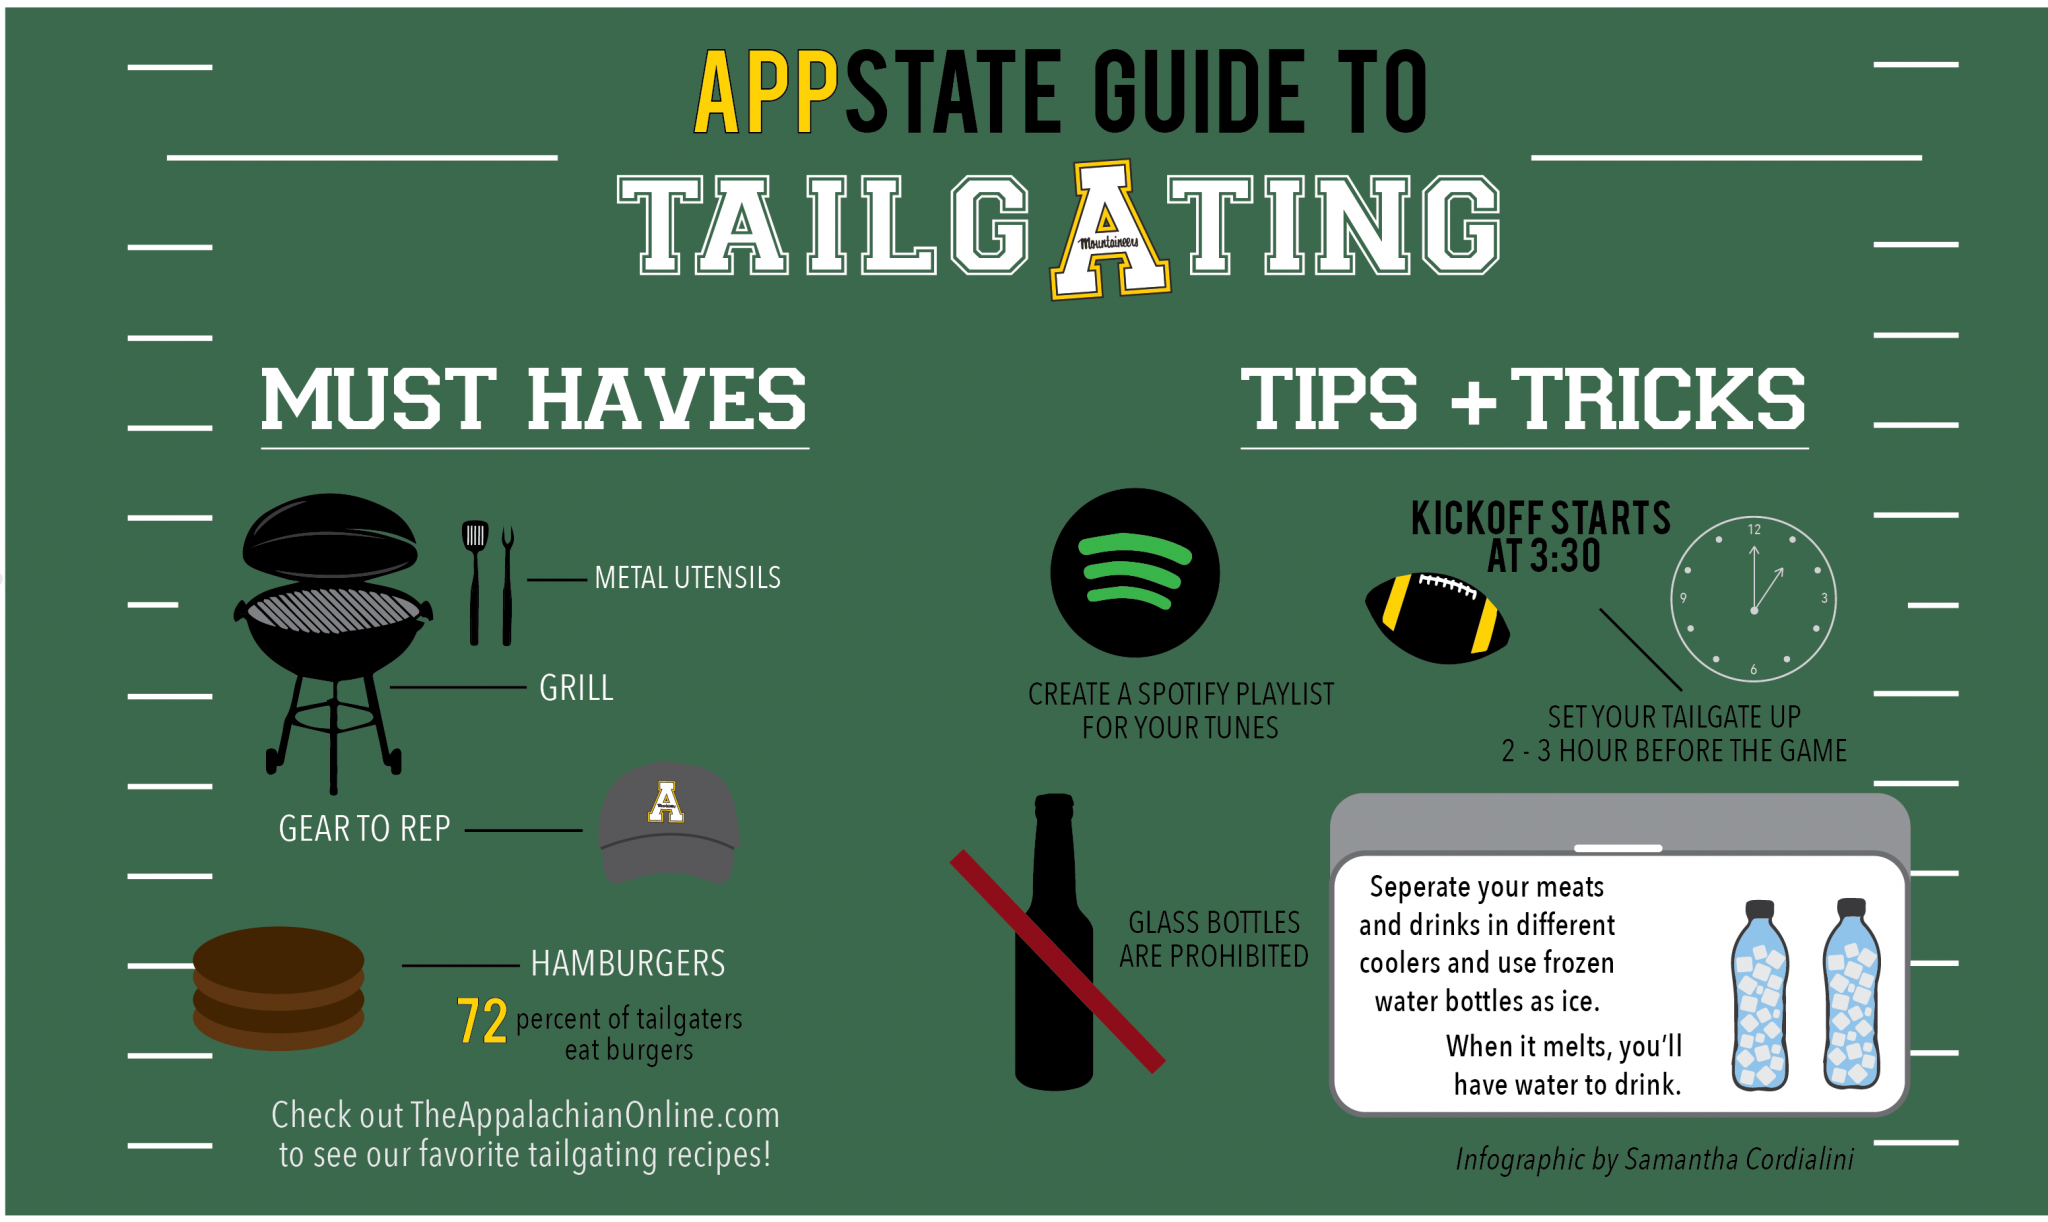 App+State+Guide+to+Tailgating